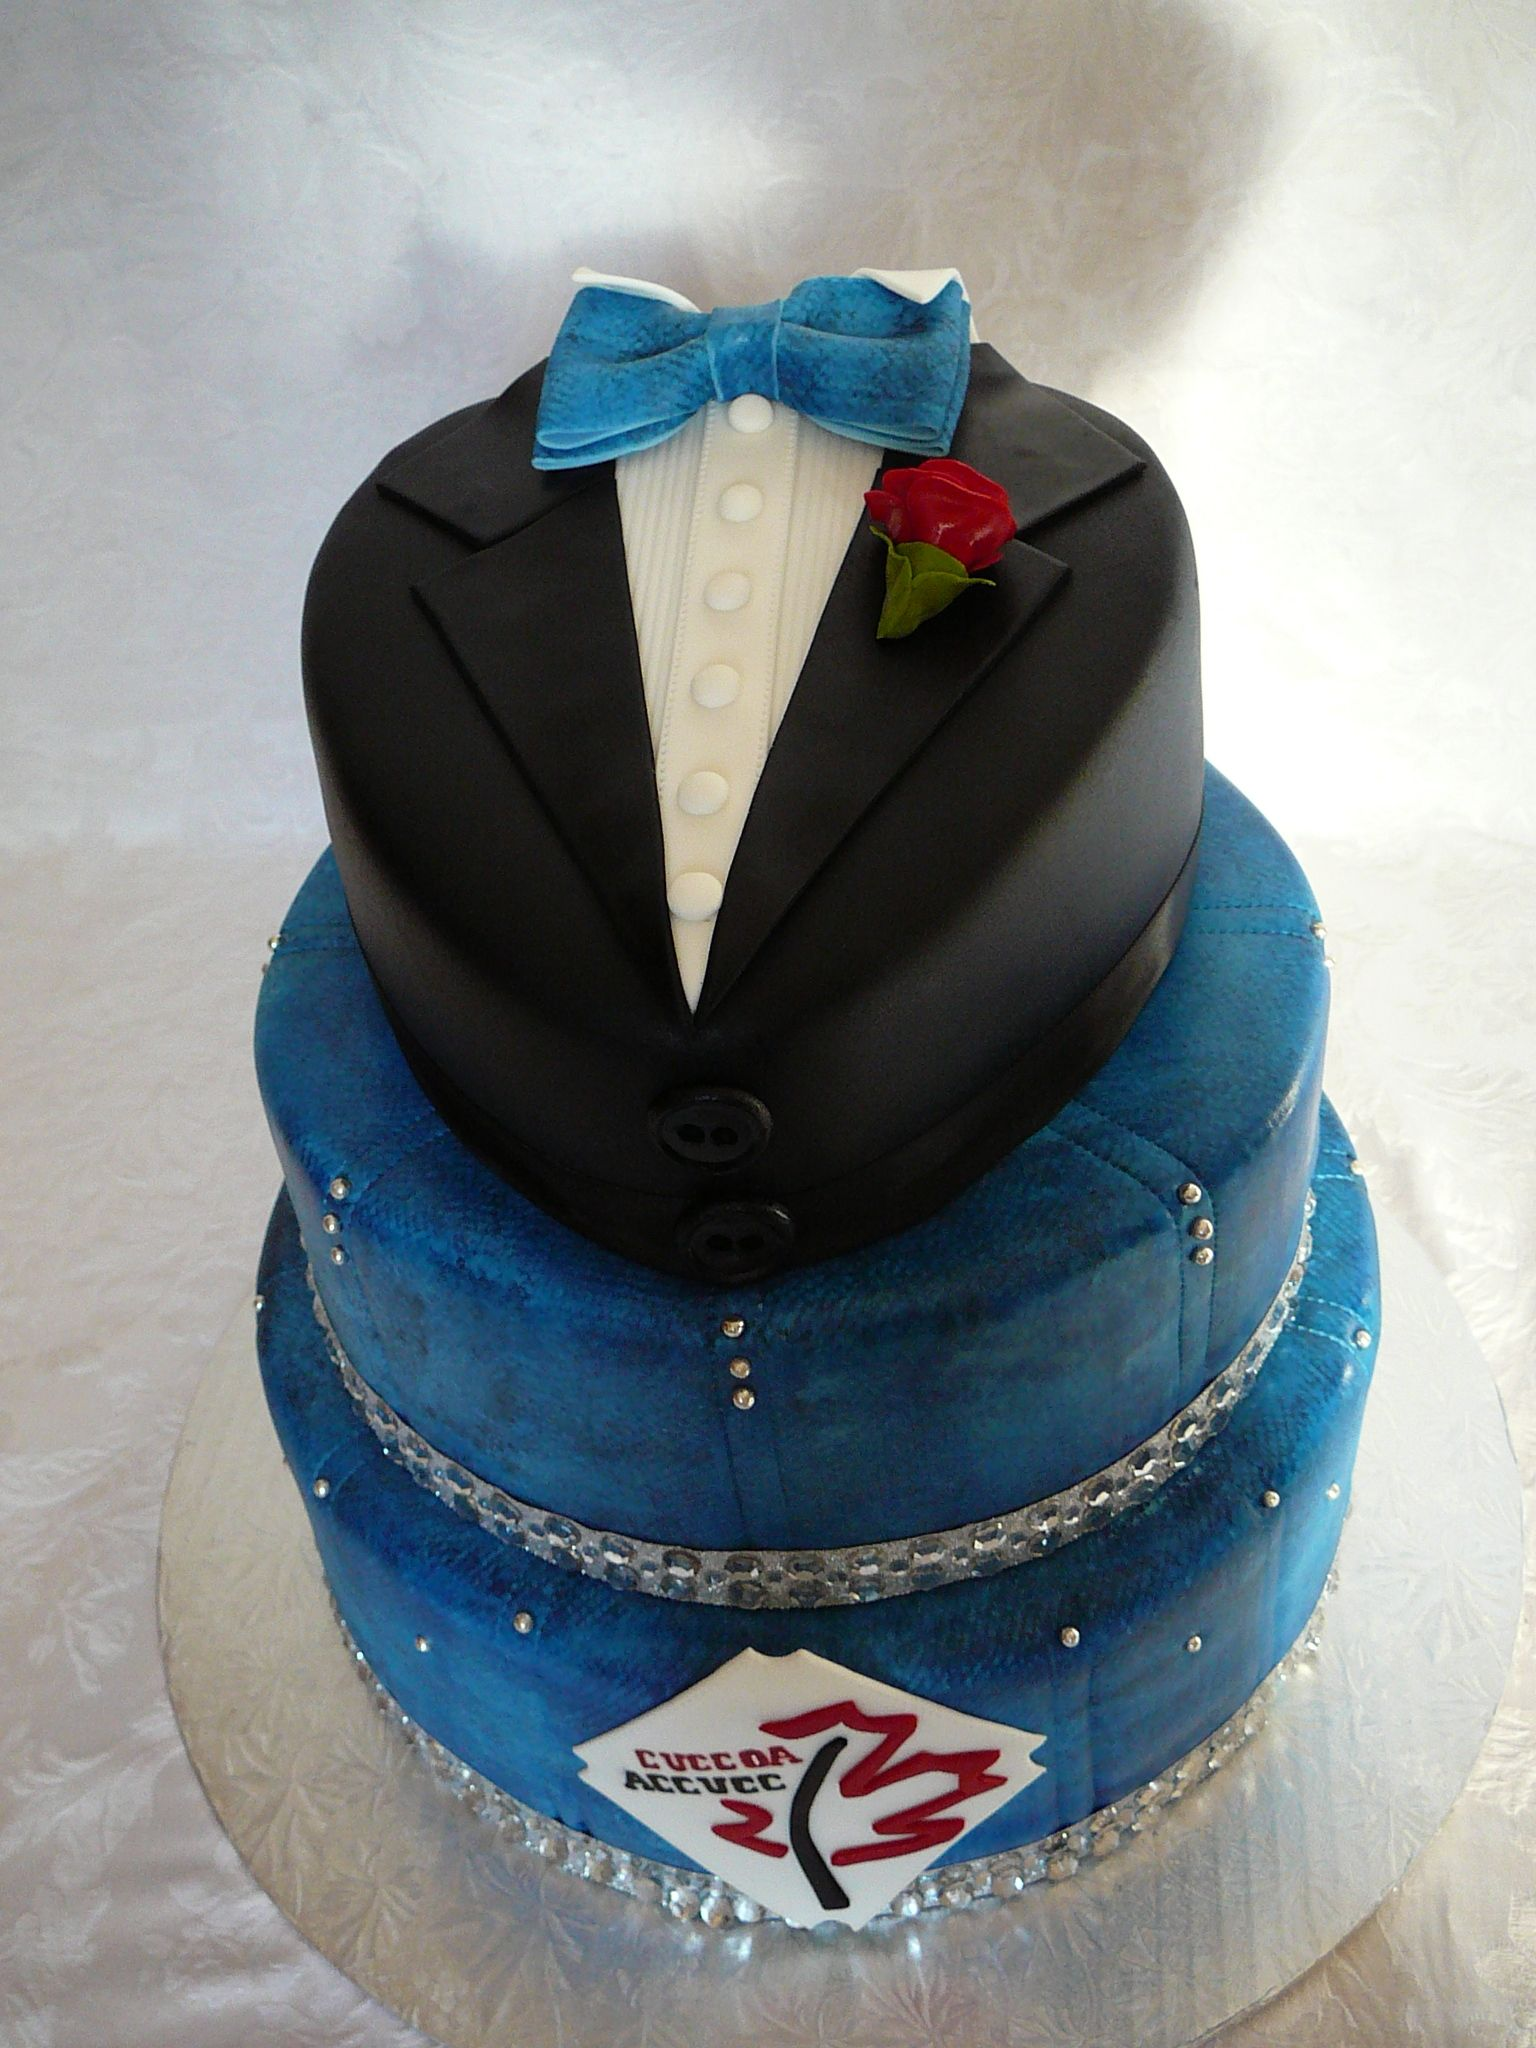 Denim and diamond with tuxedo - I create a cake with theme Denim and Diamond. I was very pleased with the result of my denim effect that I painted on fondant using my own technique that works pretty well. I used fabric ribbon on which I glued one by one the stones... Time consuming but the result is what I wanted. This was a chocolate cake with custard filling, chocolate ganache frosting covered with fondant.